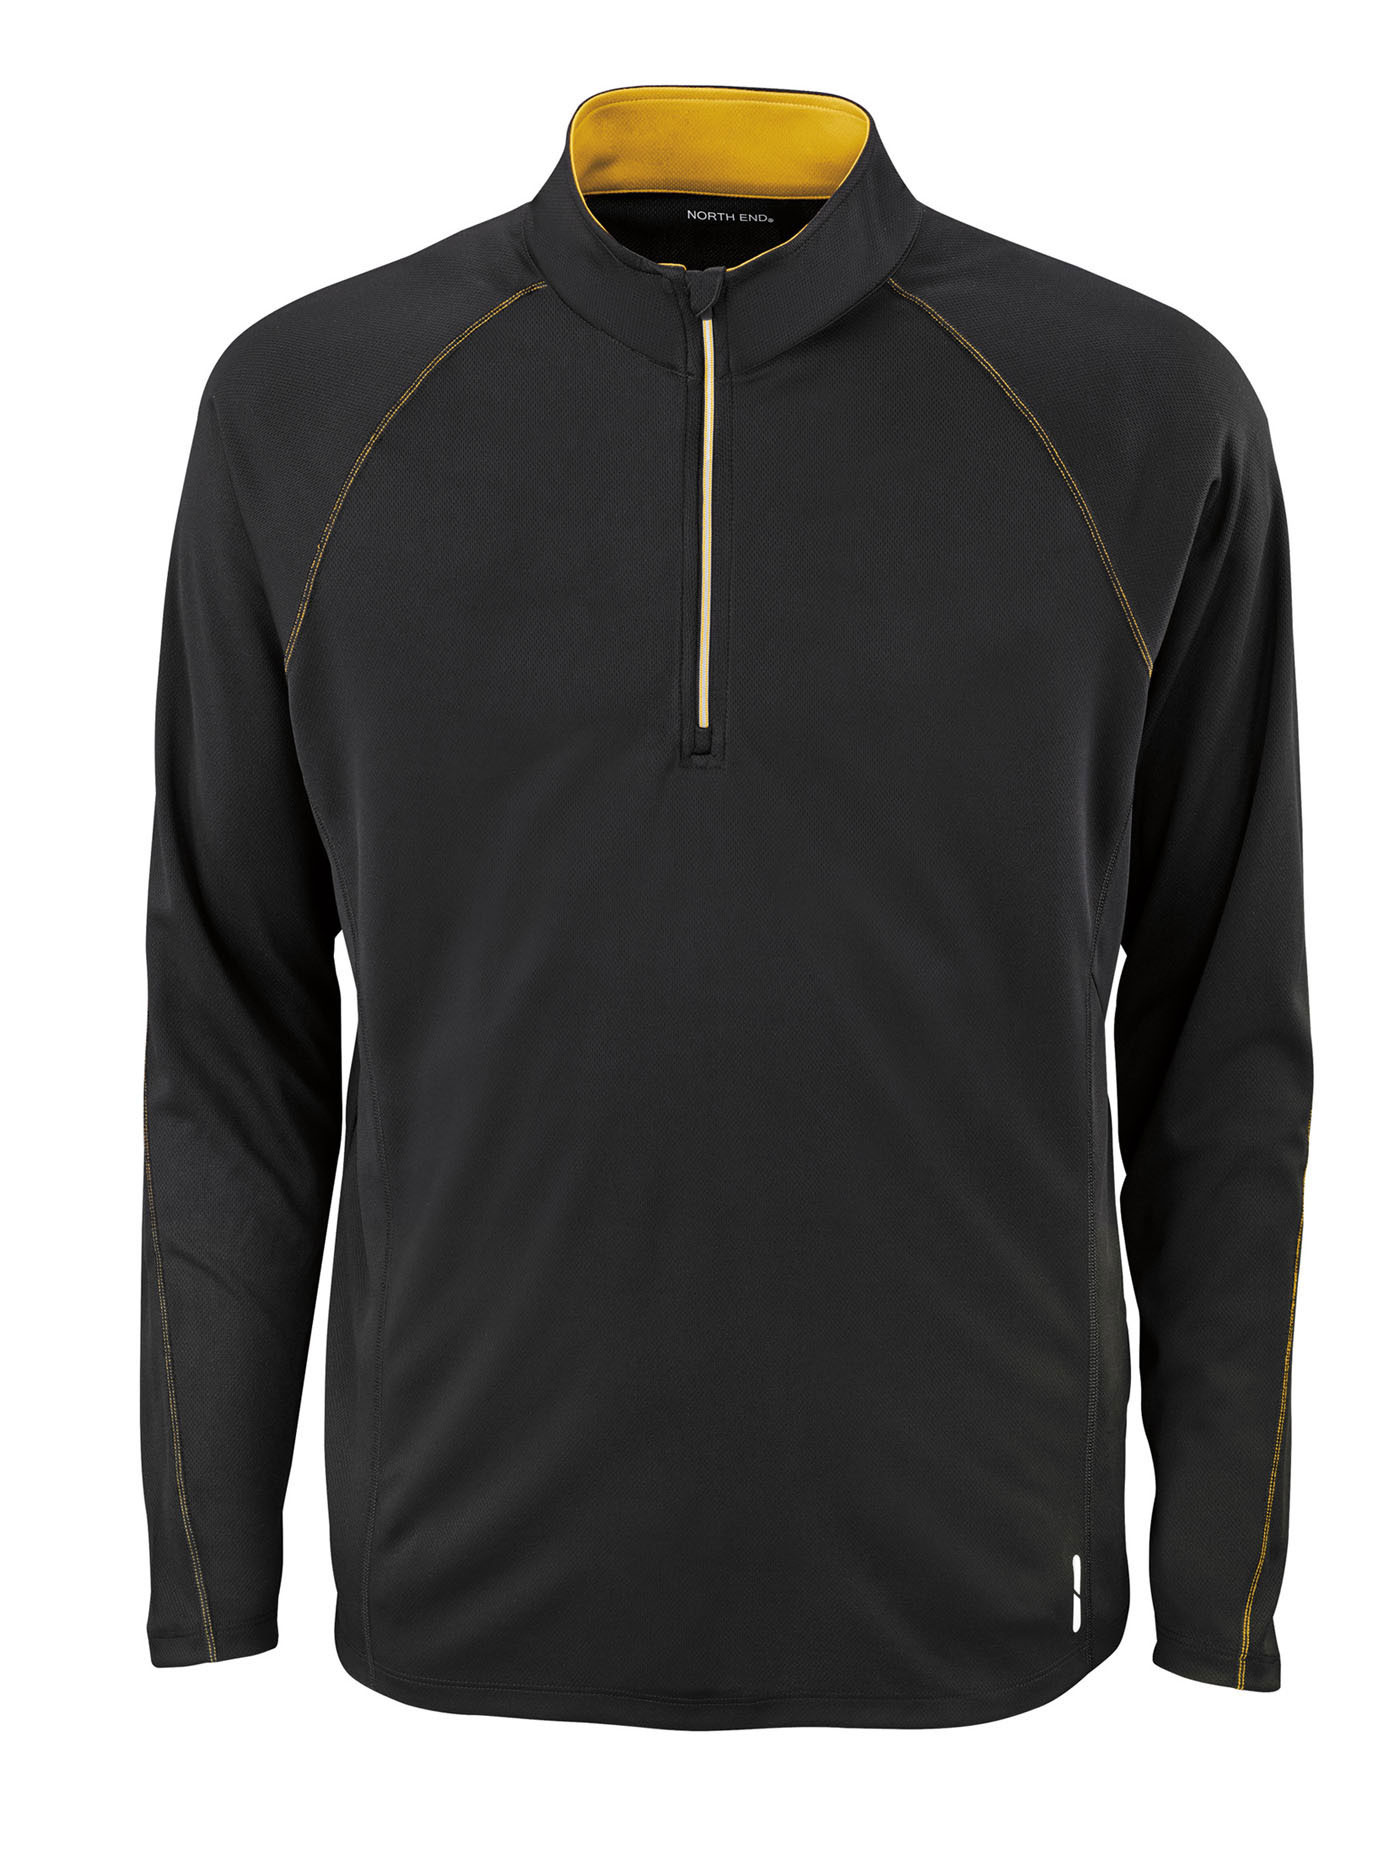 Ash City Mens Half-Zip Performance Long Sleeve Top